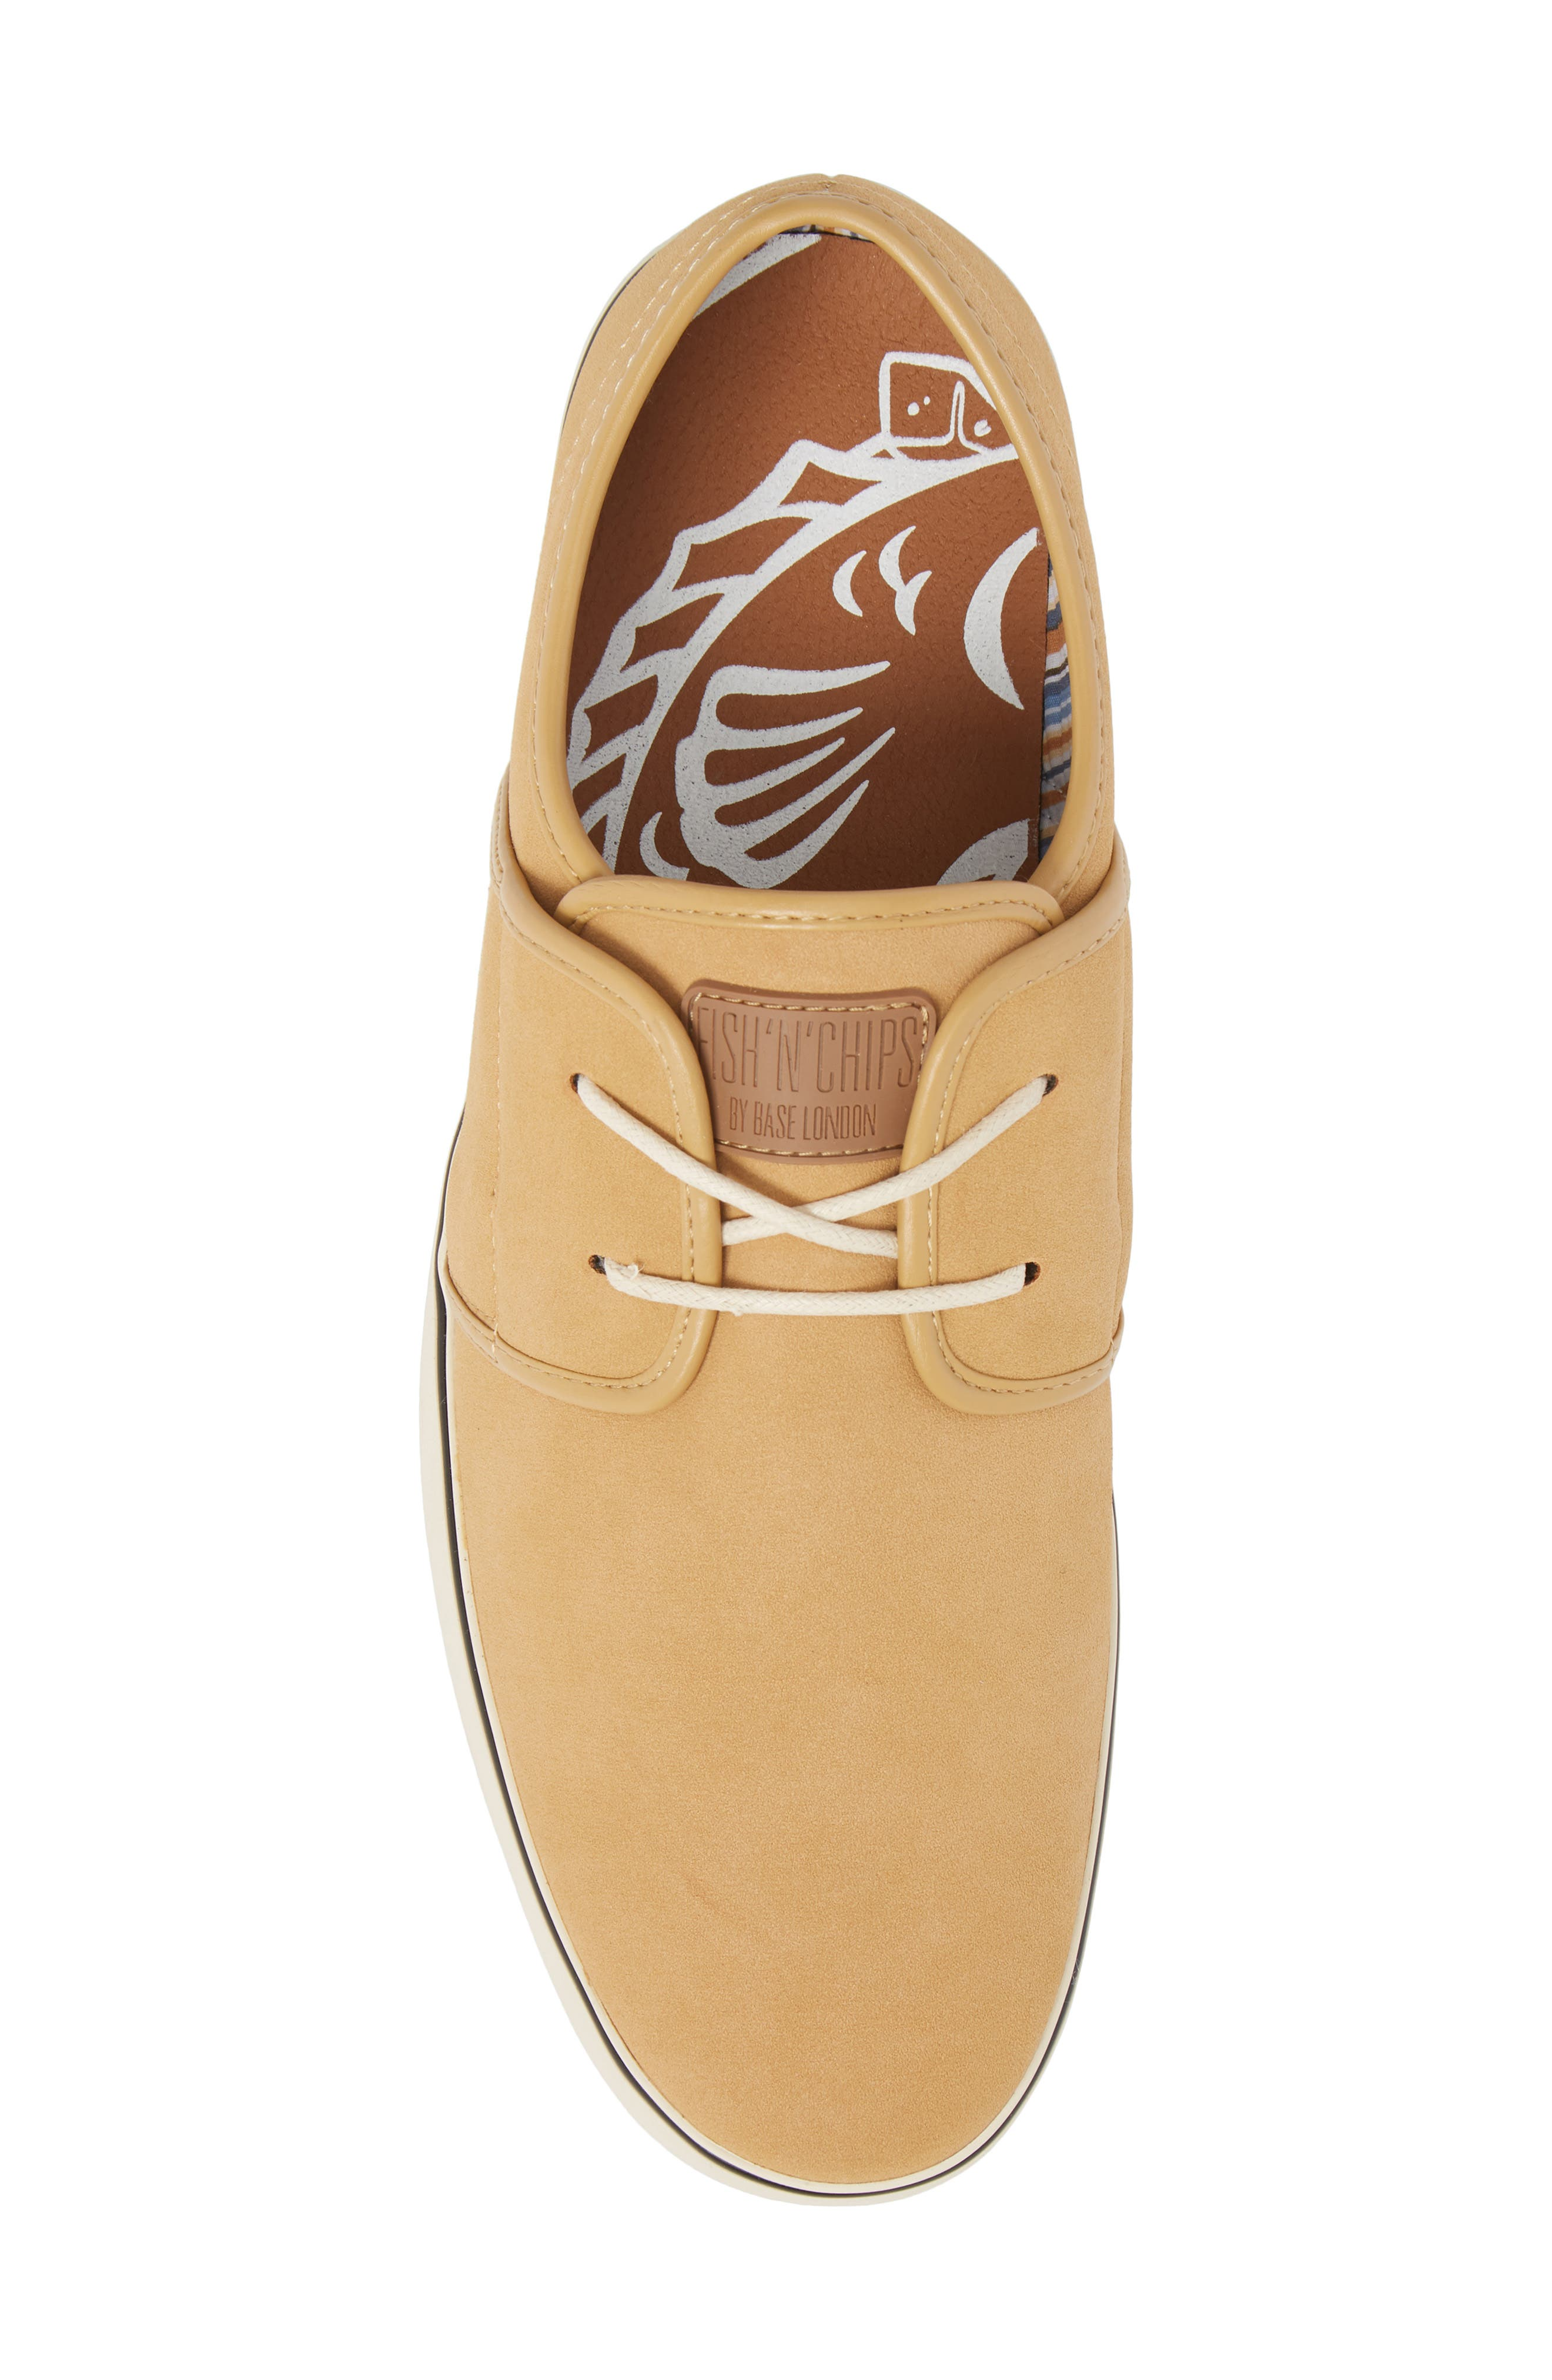 Fish 'N' Chips Surrey Low Top Sneaker,                             Alternate thumbnail 5, color,                             SOFT BROWN FAUX SUEDE